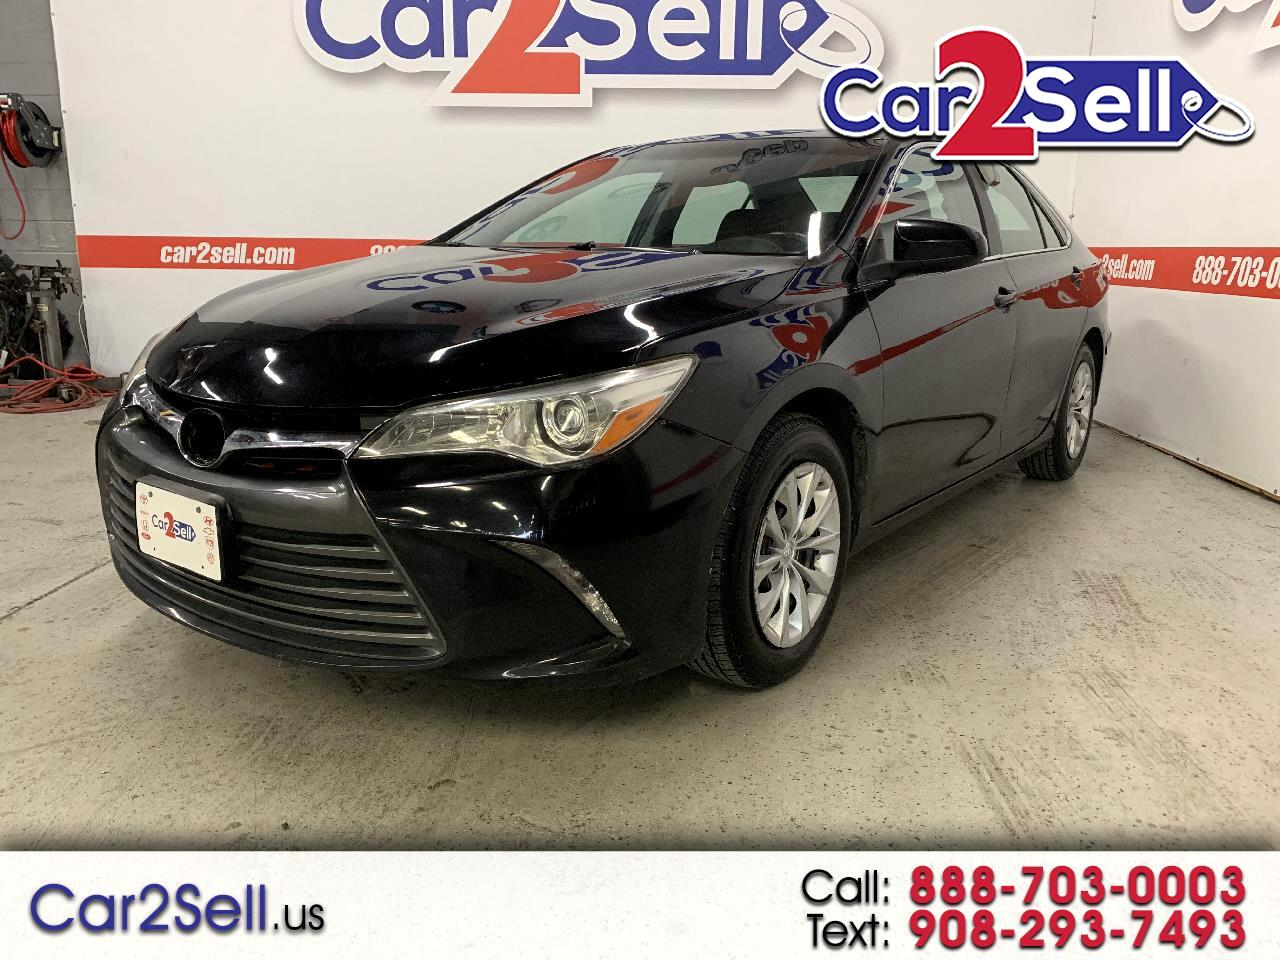 Toyota Camry Hybrid 4dr Sdn LE (Natl) *Ltd Avail* 2015